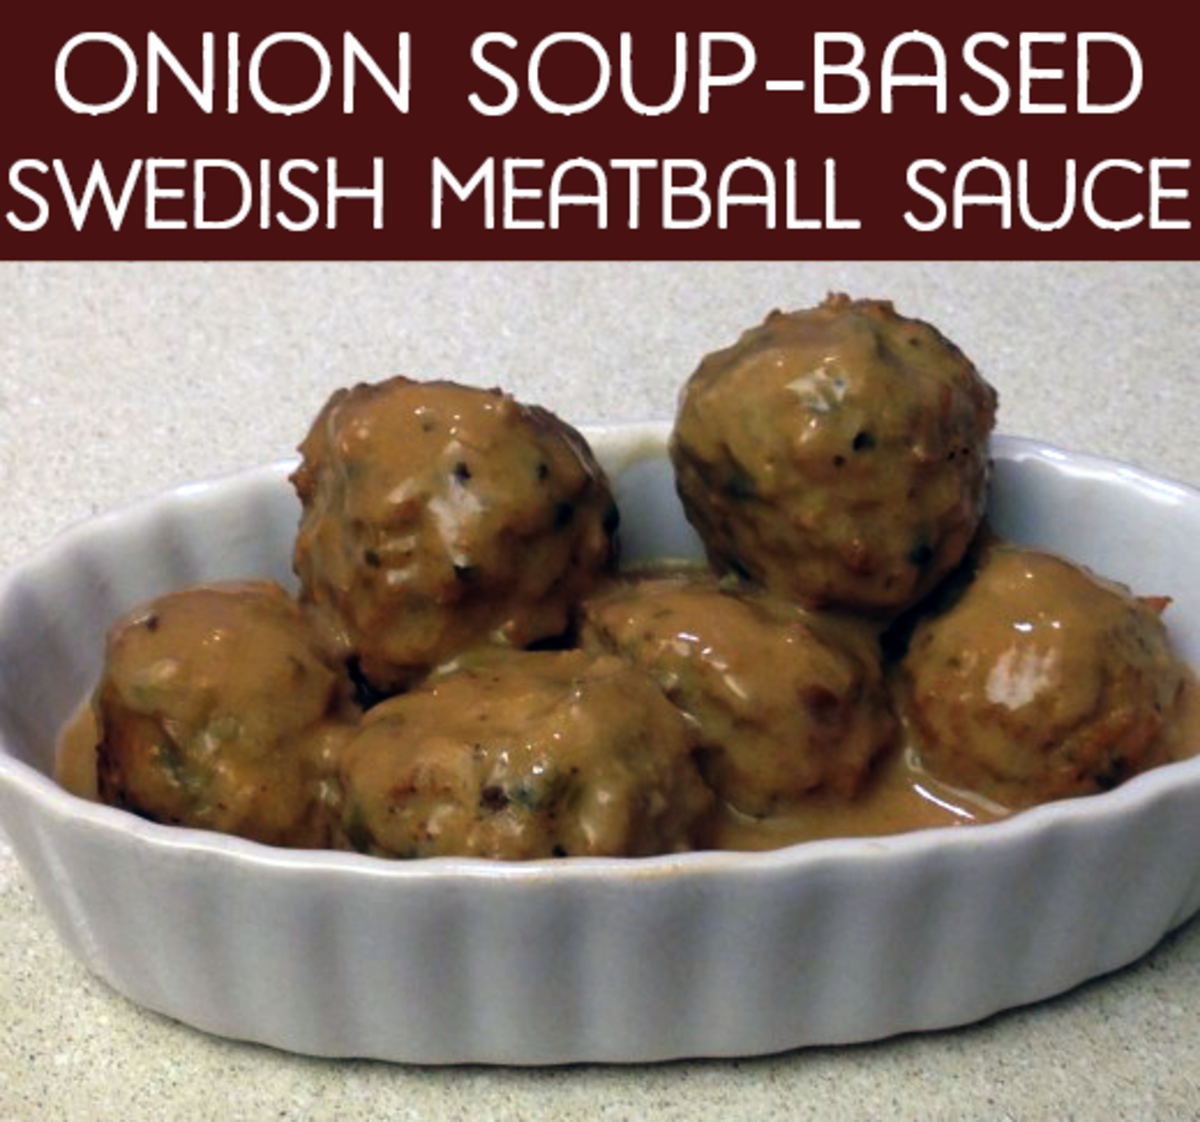 Onion Soup-Based Swedish Meatball Sauce